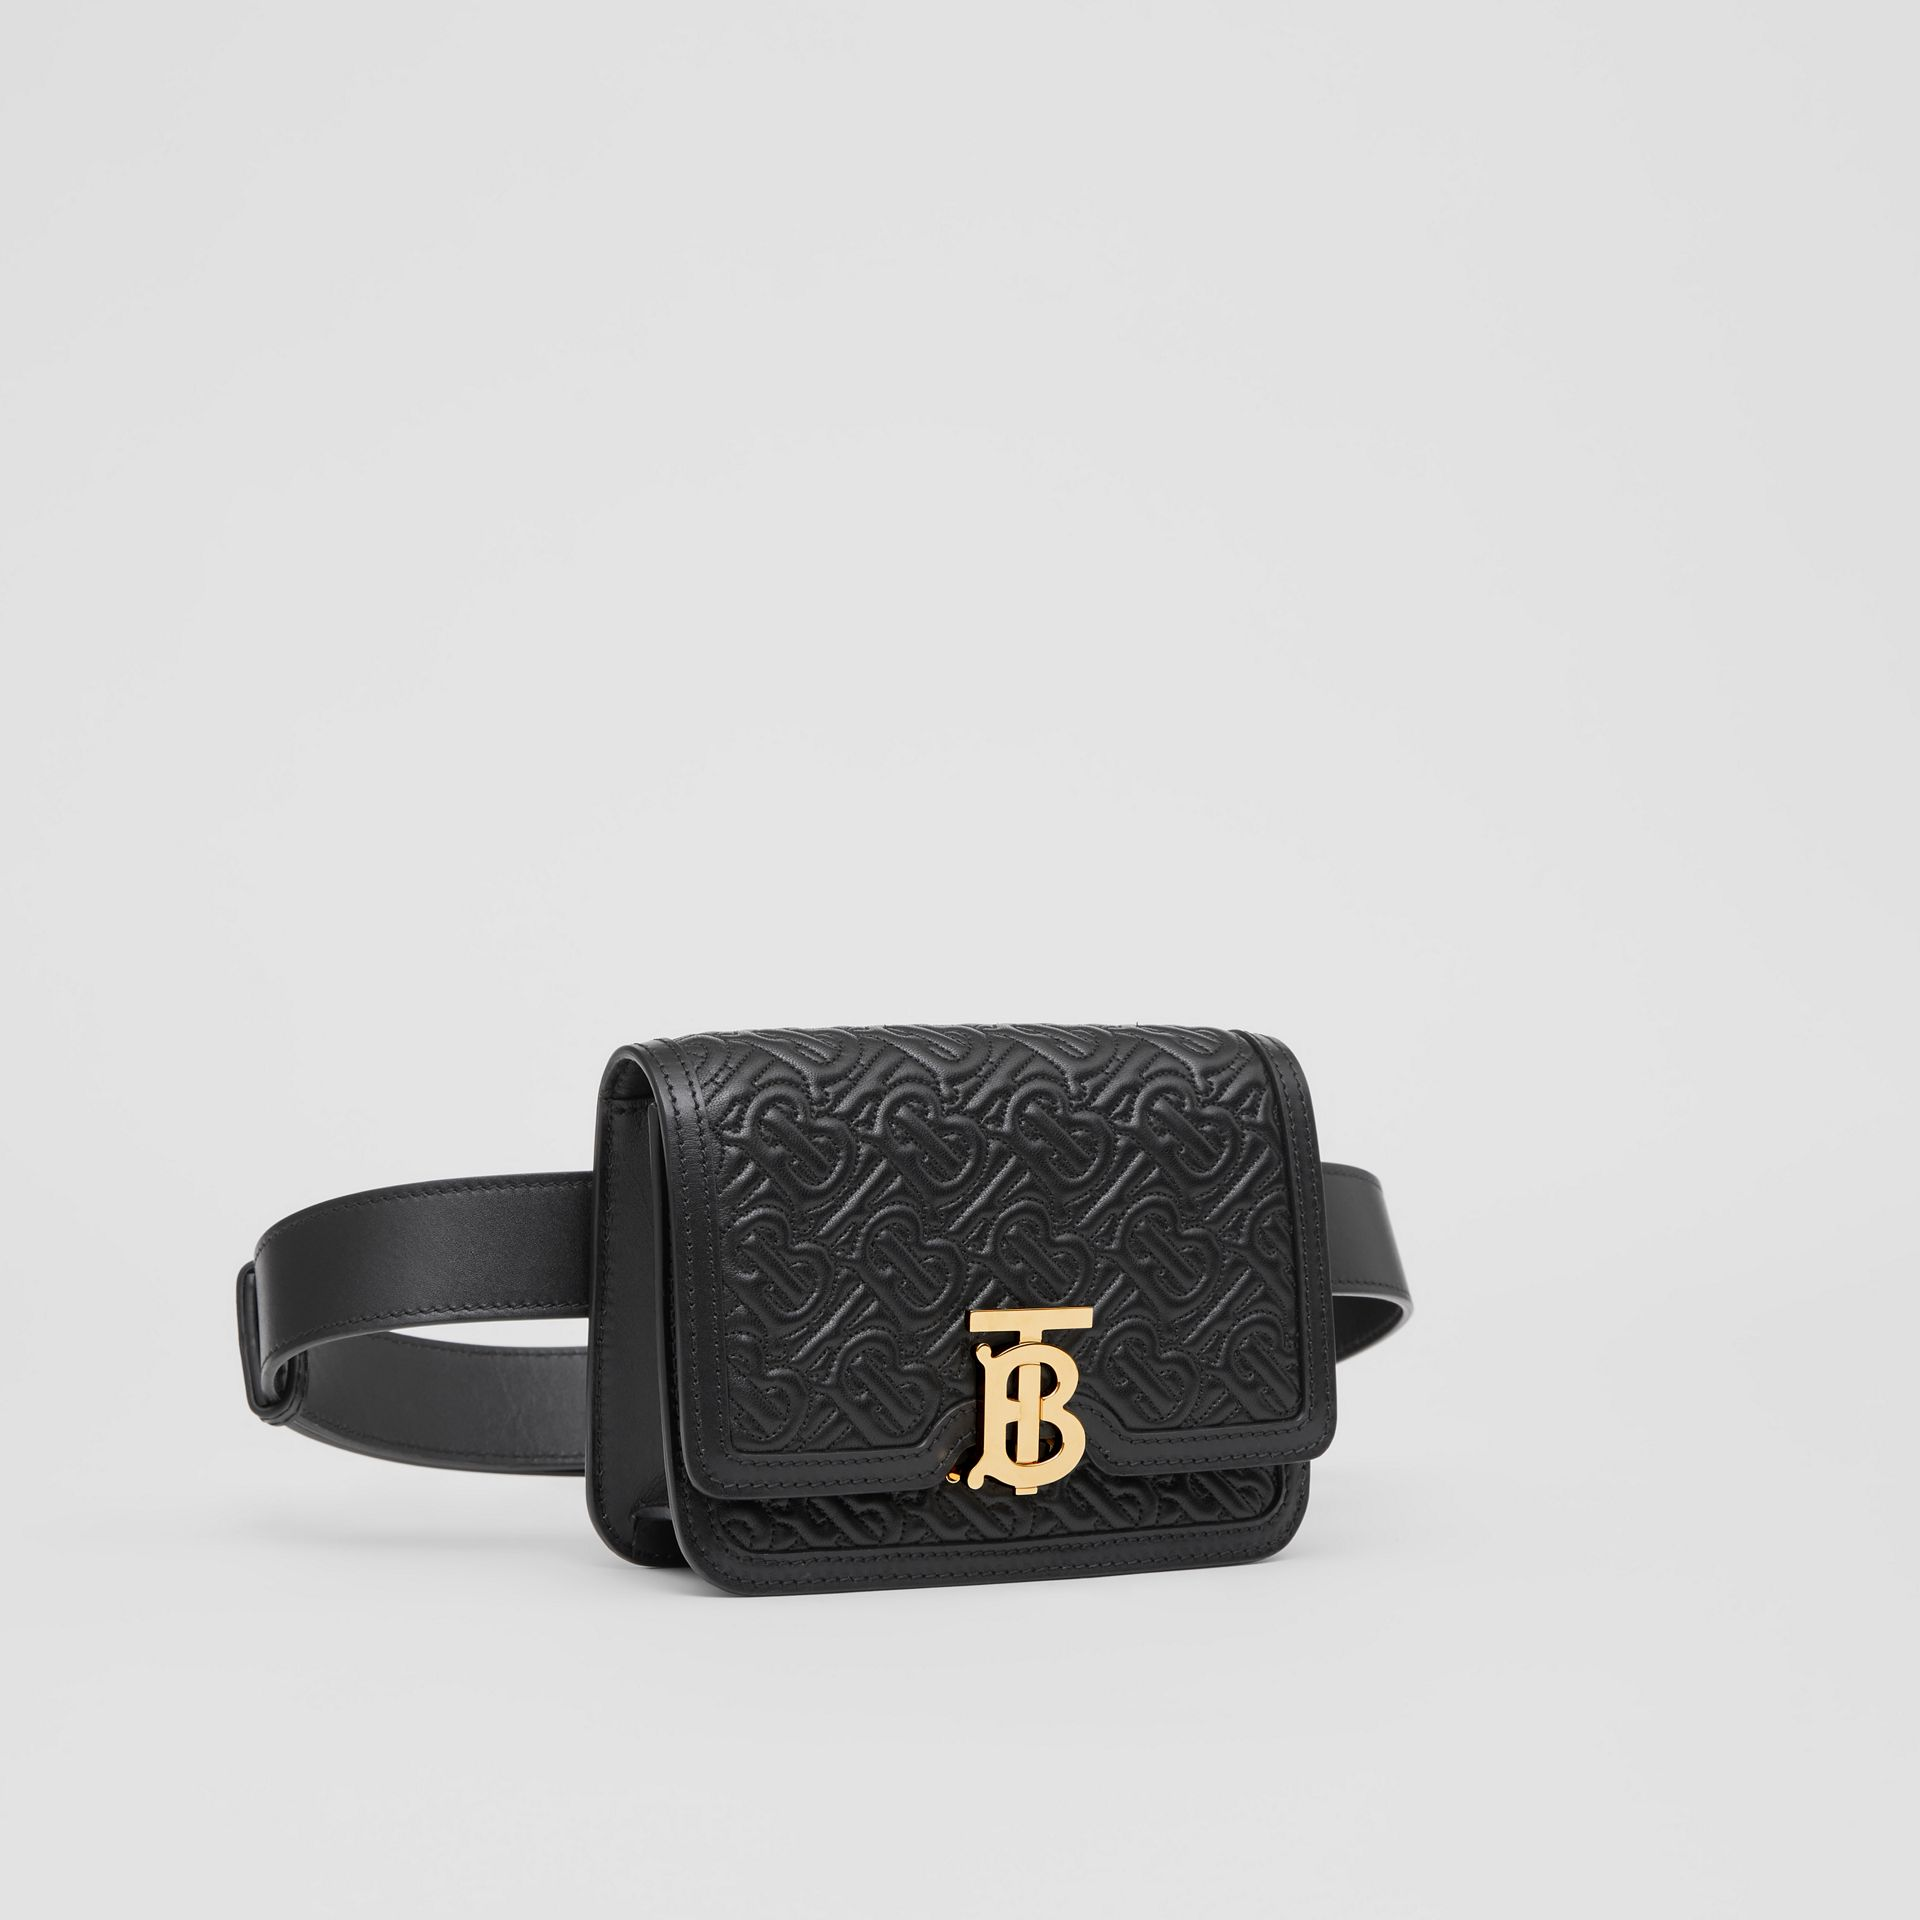 Belted Quilted Monogram Lambskin TB Bag in Black - Women | Burberry Hong Kong S.A.R - gallery image 6